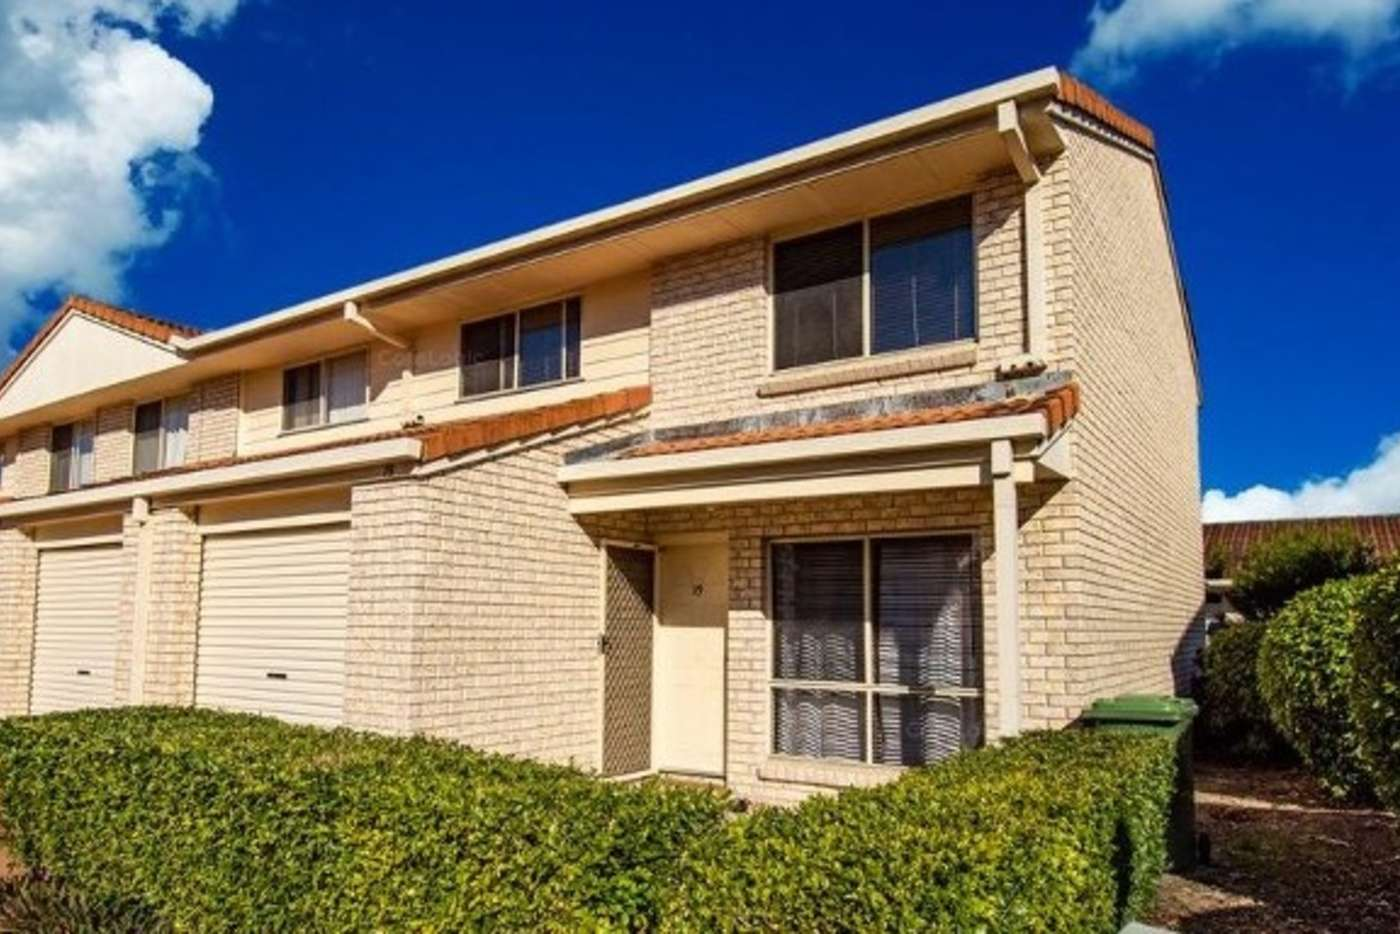 Main view of Homely house listing, 19/110 Johnson Rd, Hillcrest QLD 4118